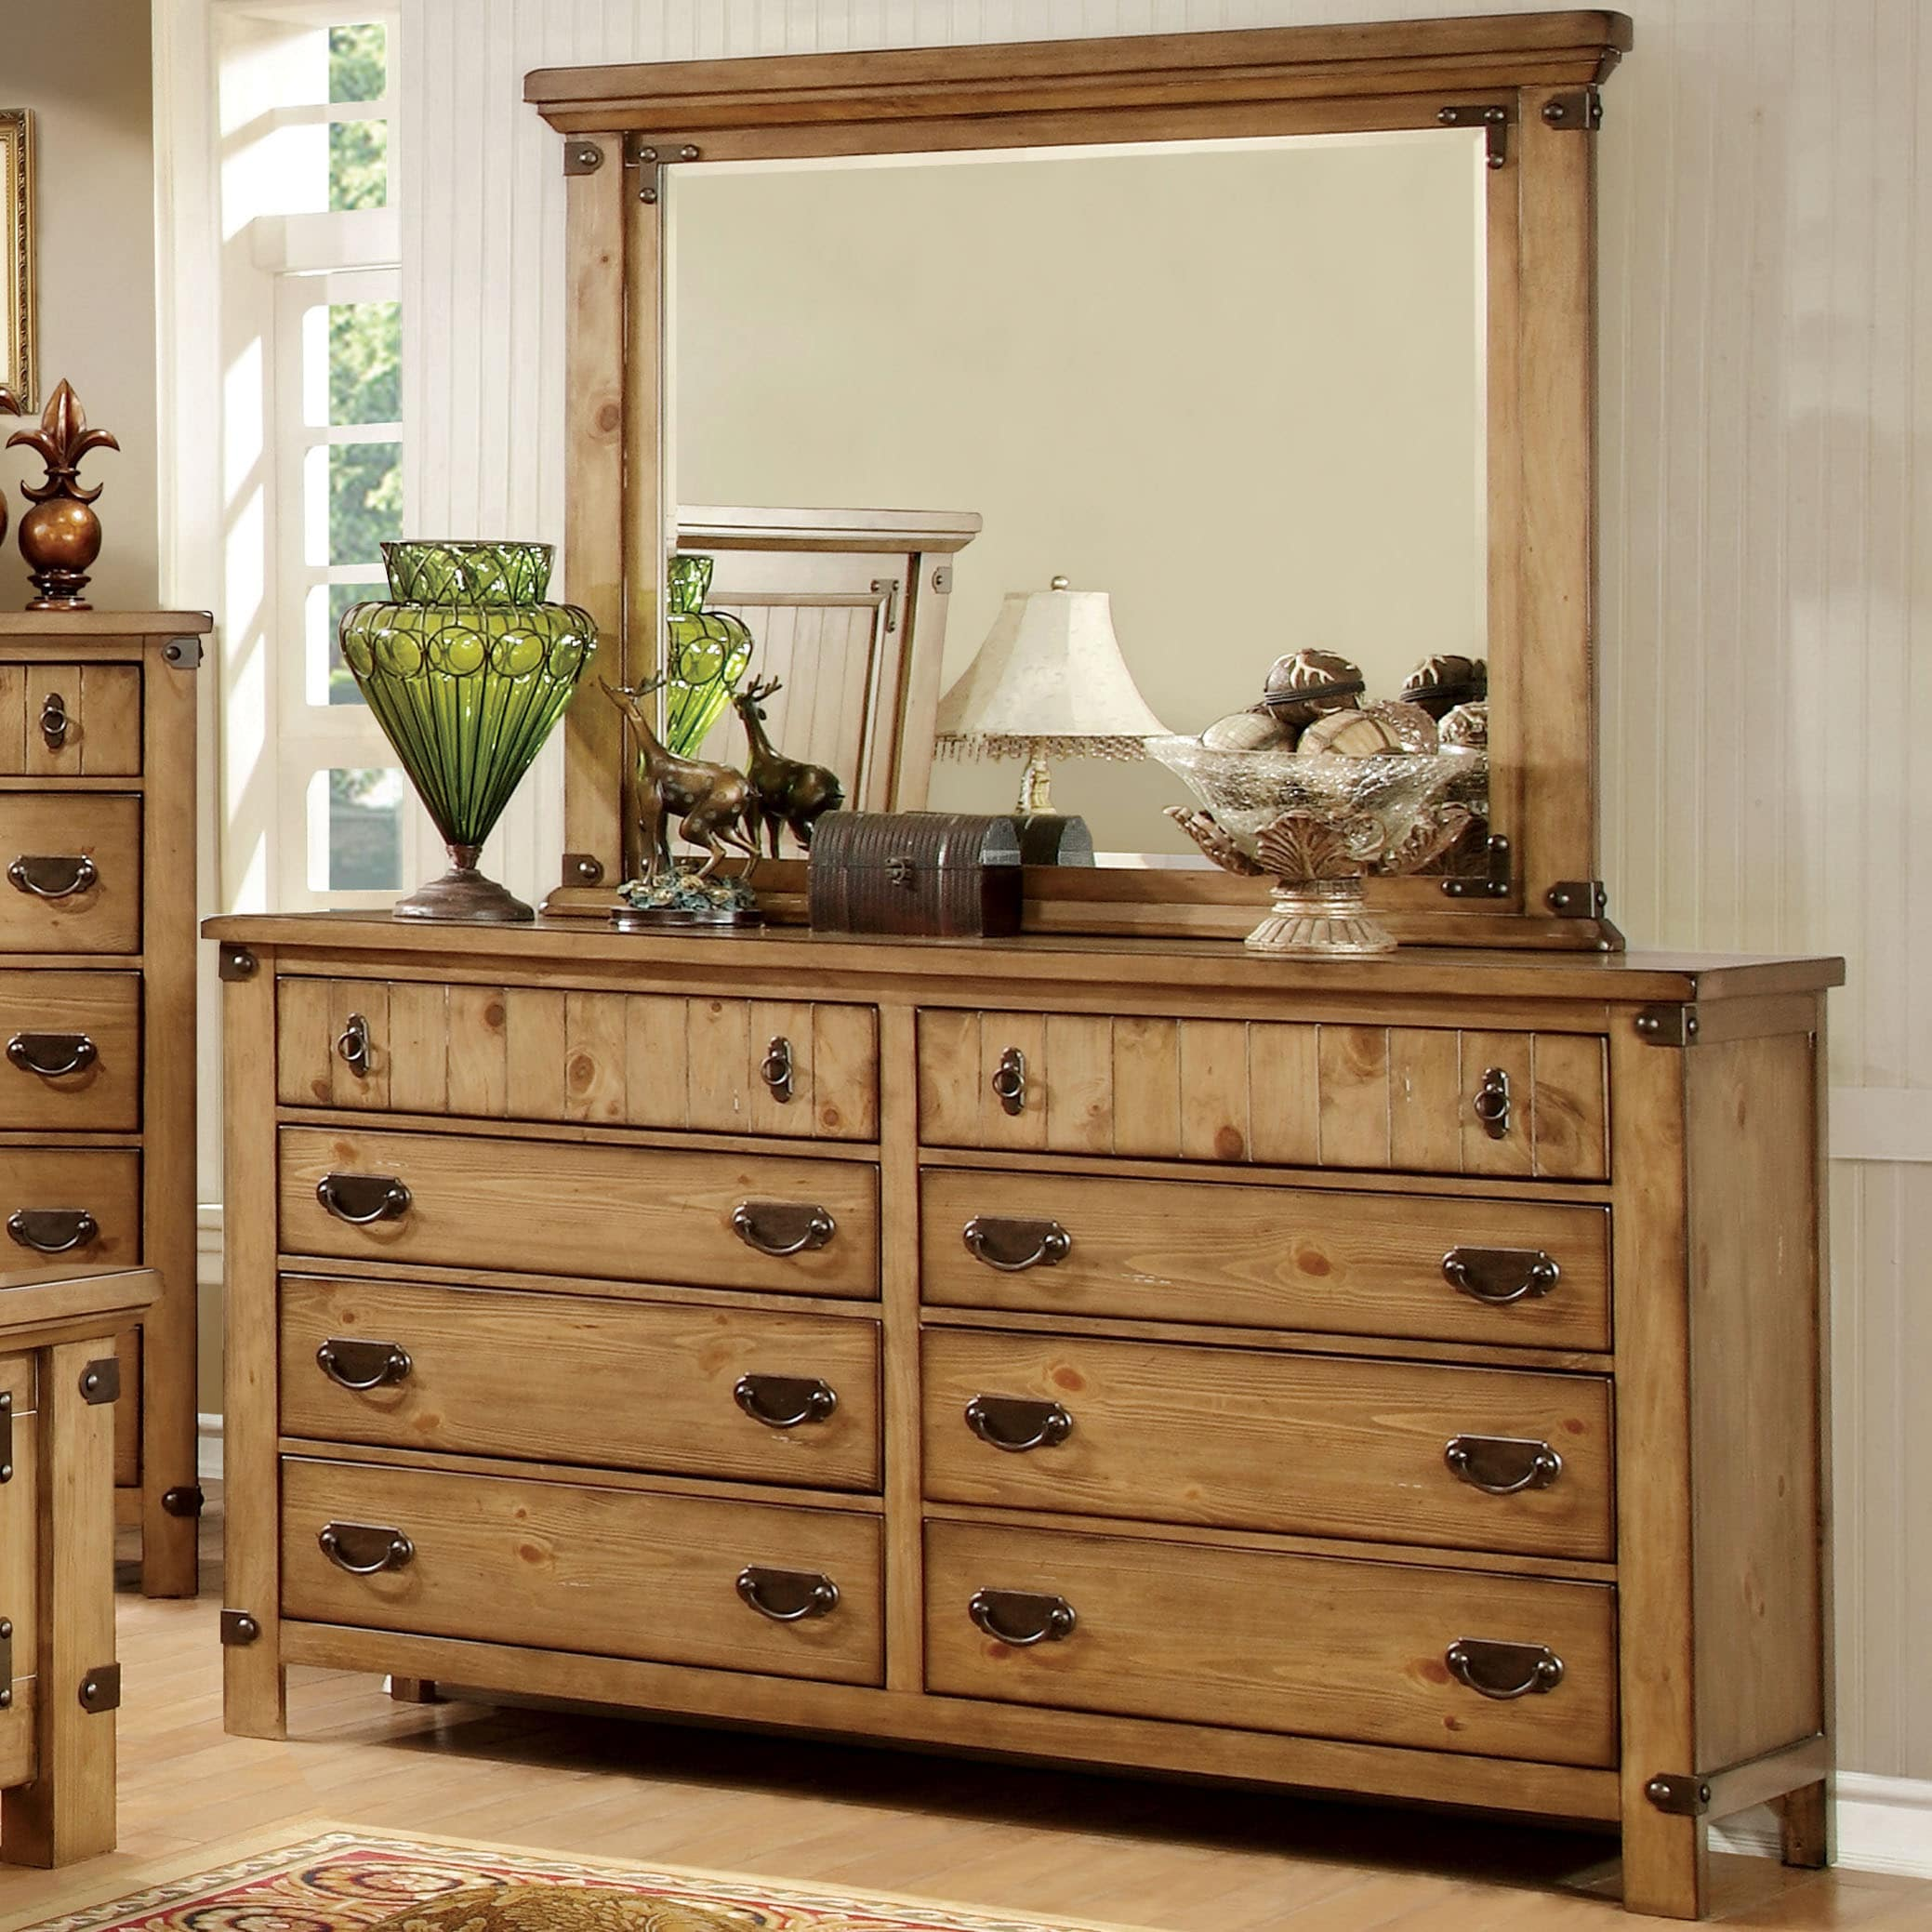 Bon Furniture Of America Sierren Country Style 2 Piece Dresser And Mirror Set